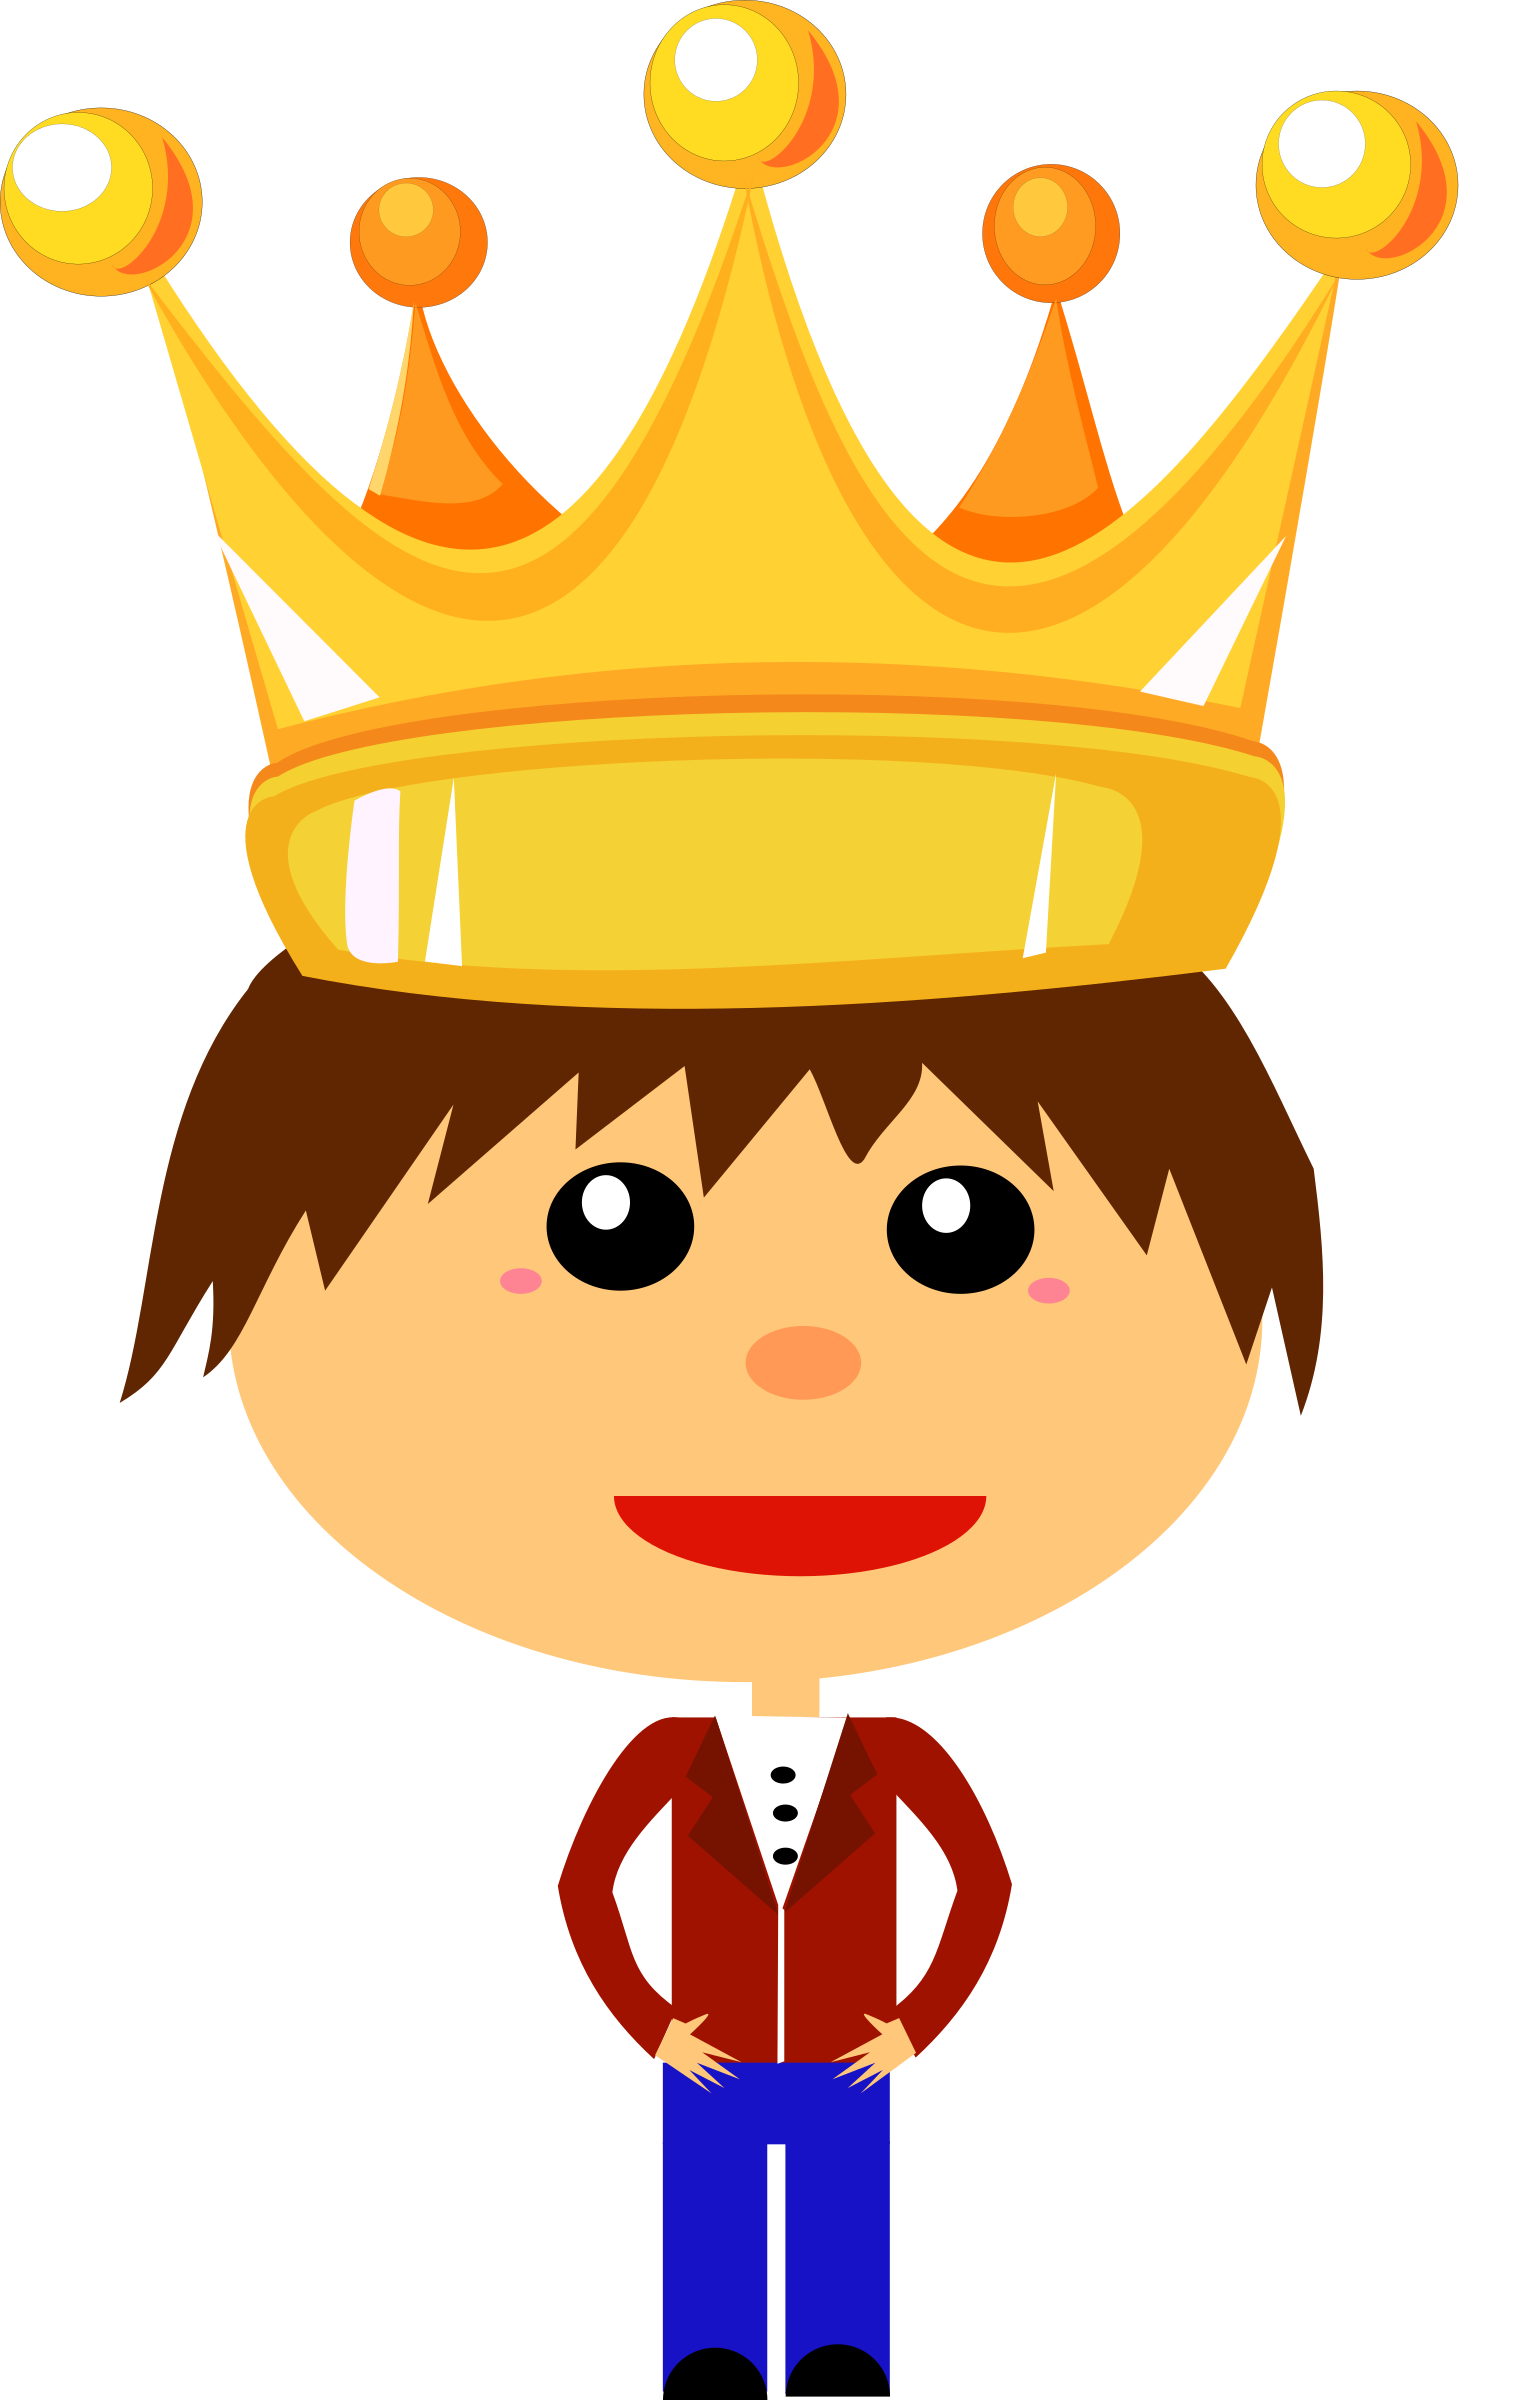 Little prince crown clipart svg free stock Clipart - Prince Boy svg free stock